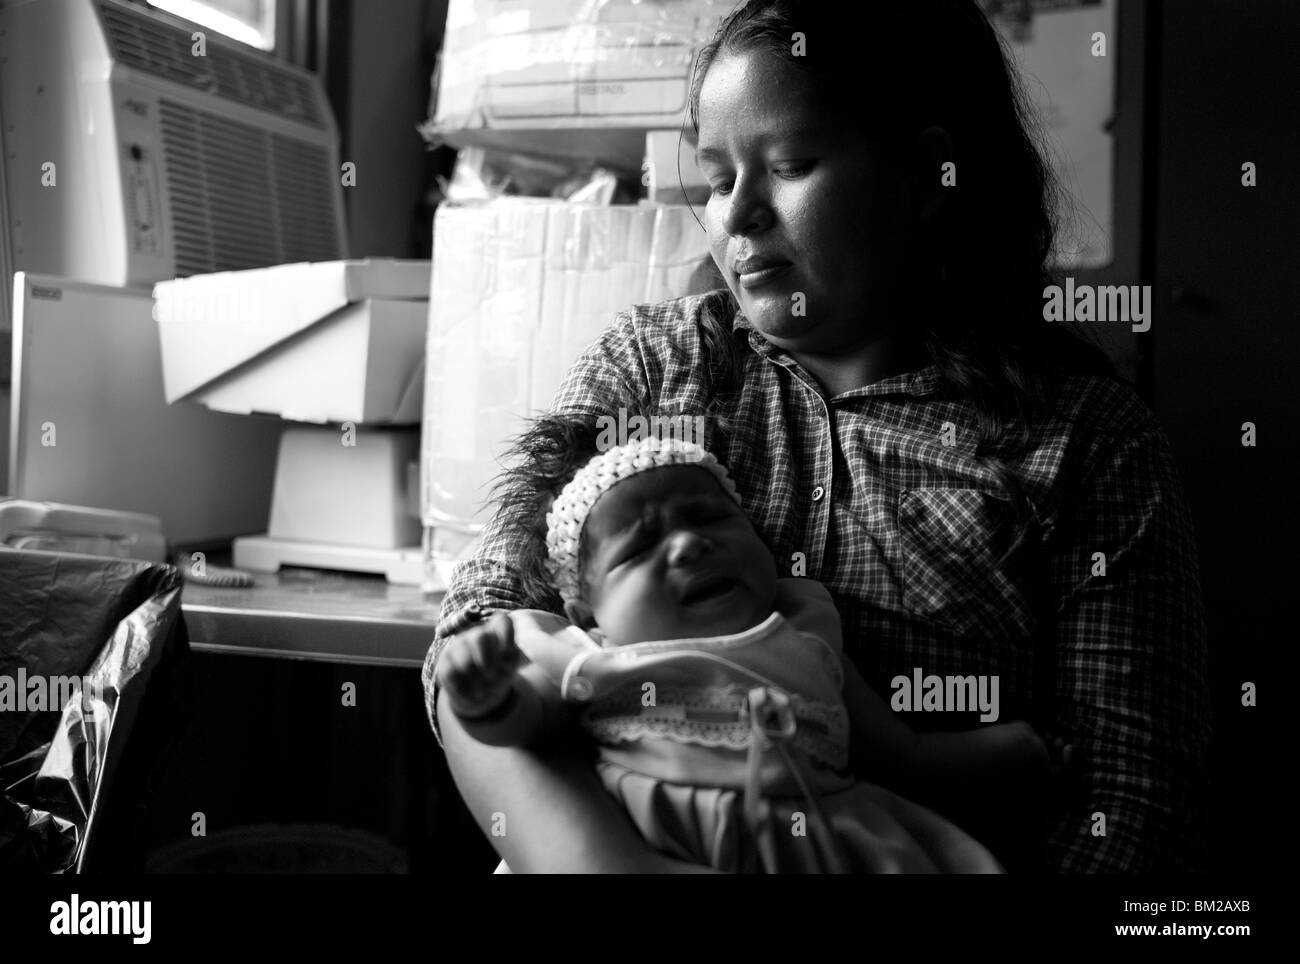 An HIV positive mother and her baby, who is HIV negative in Roatan Honduras. - Stock Image